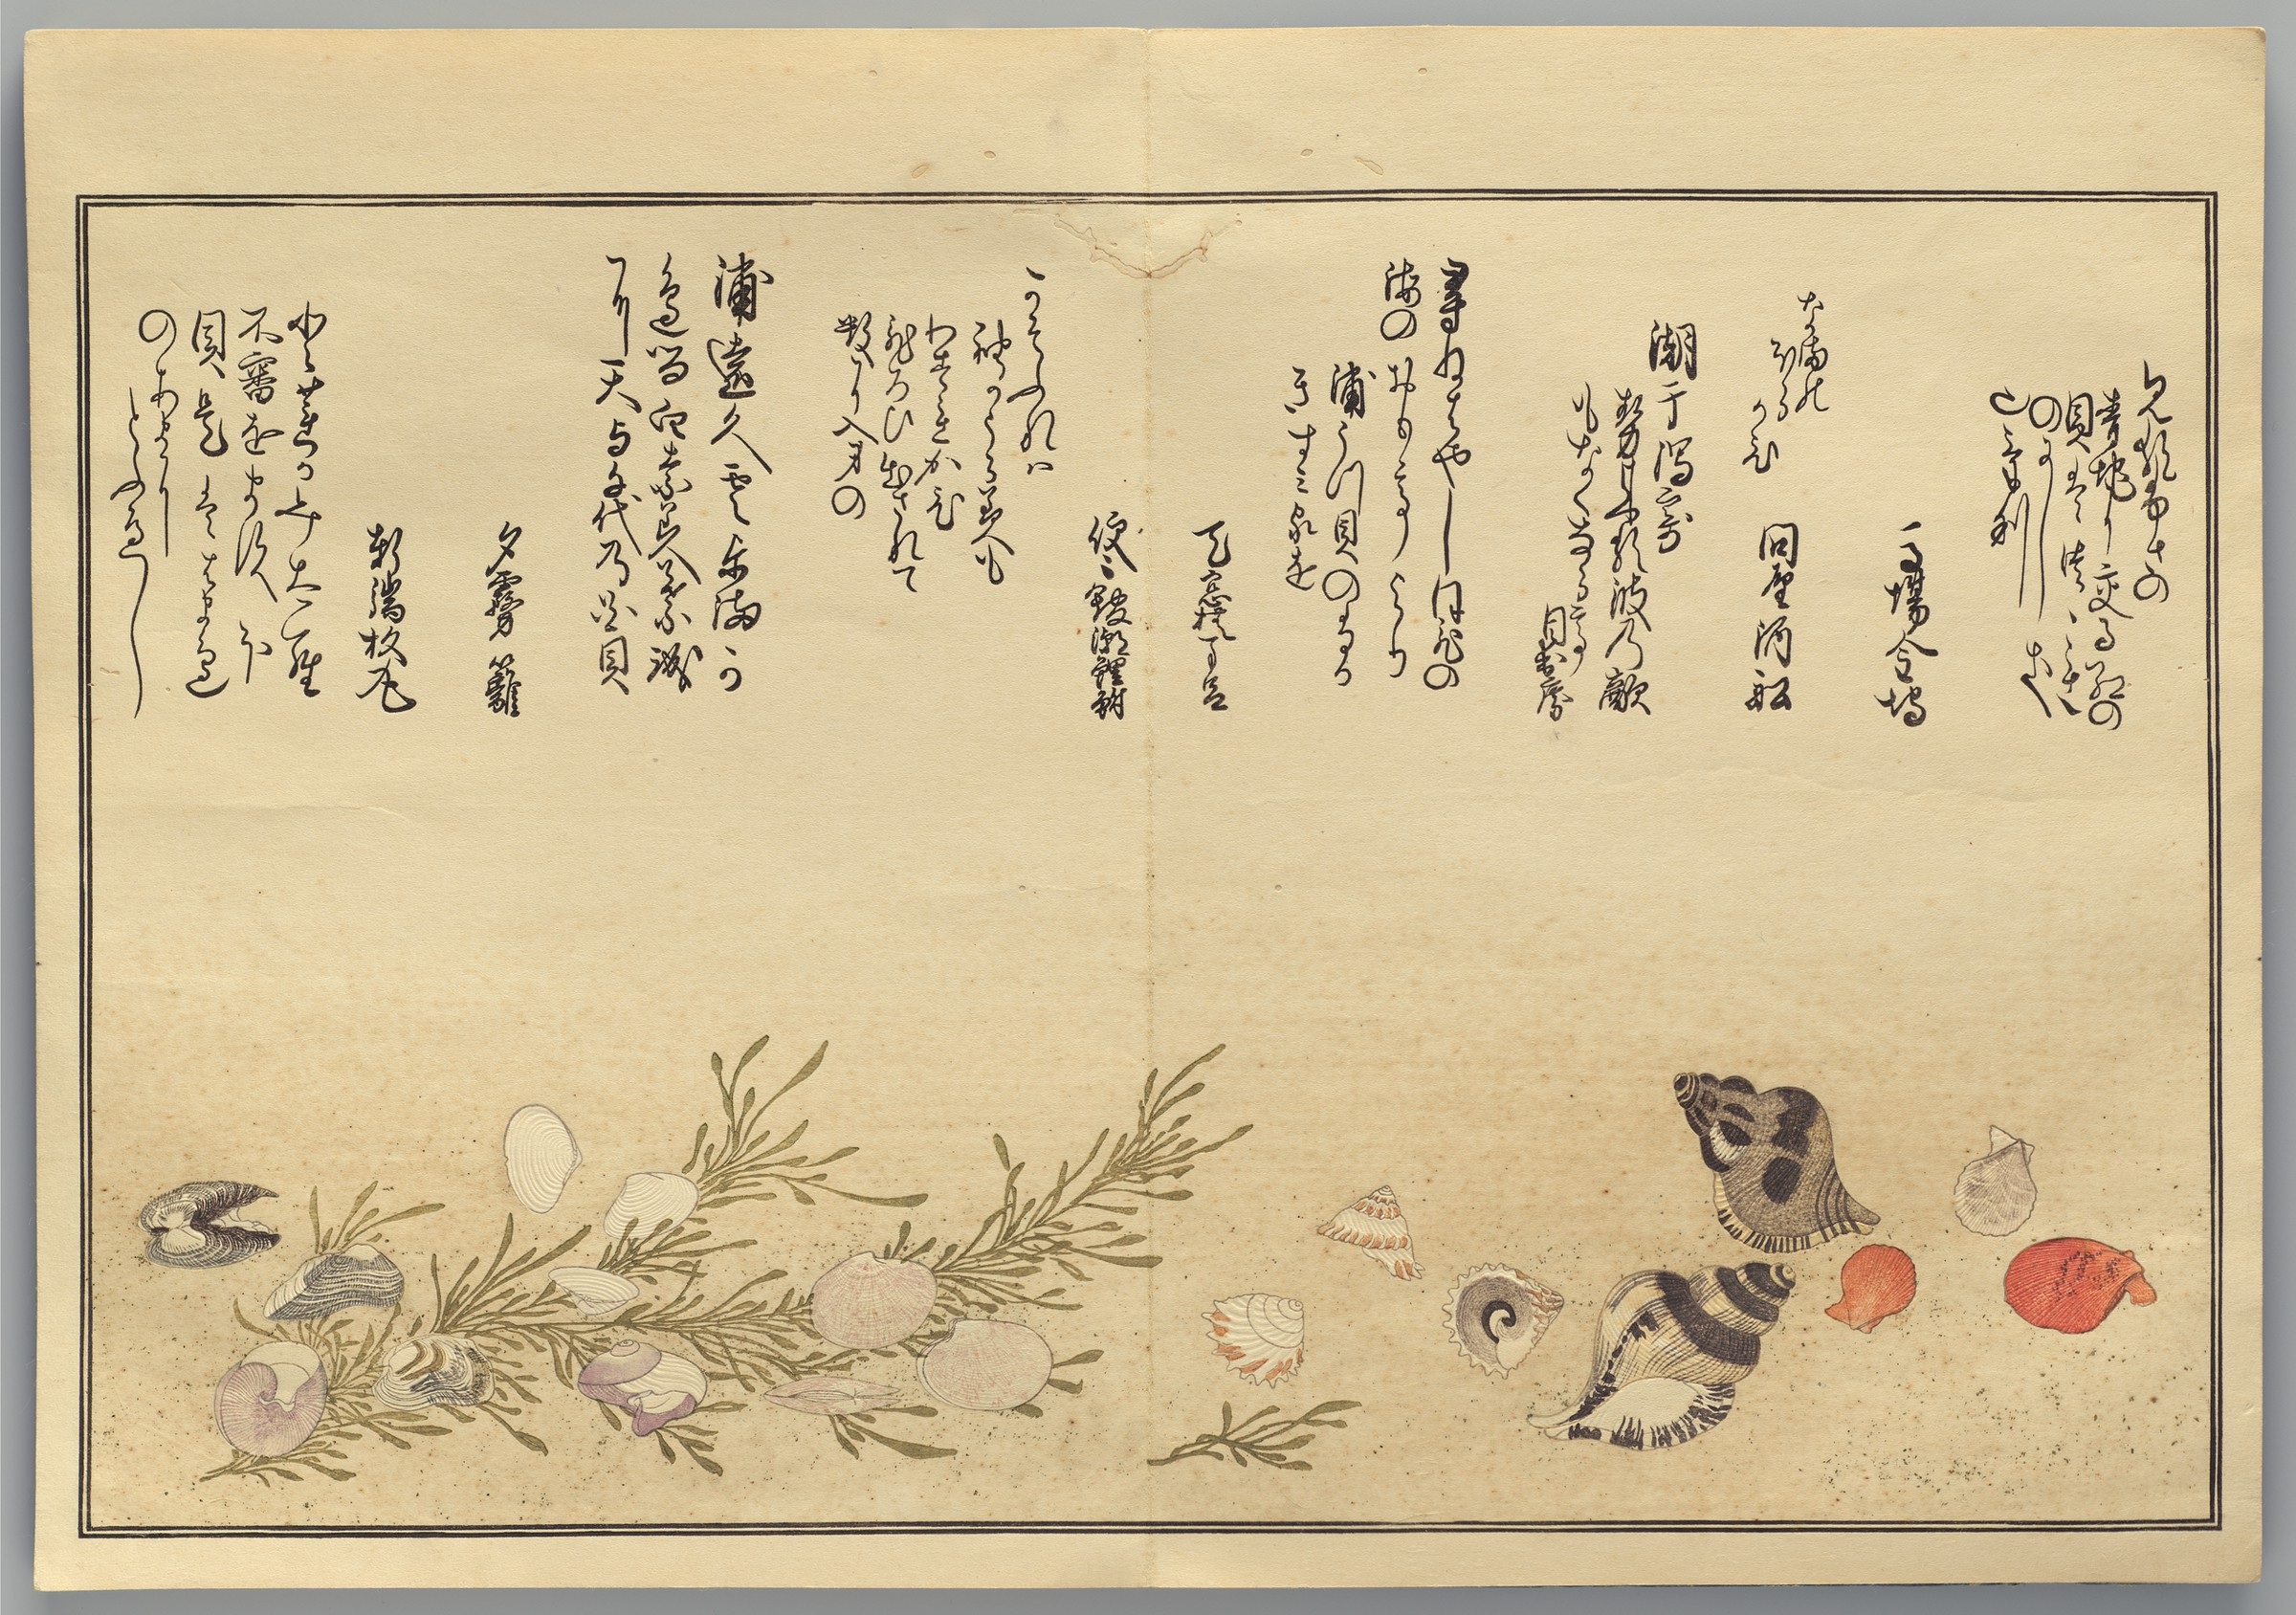 Page from the woodblock-printed book by Kitagawa Utamaro depicting seashells and seaweed.